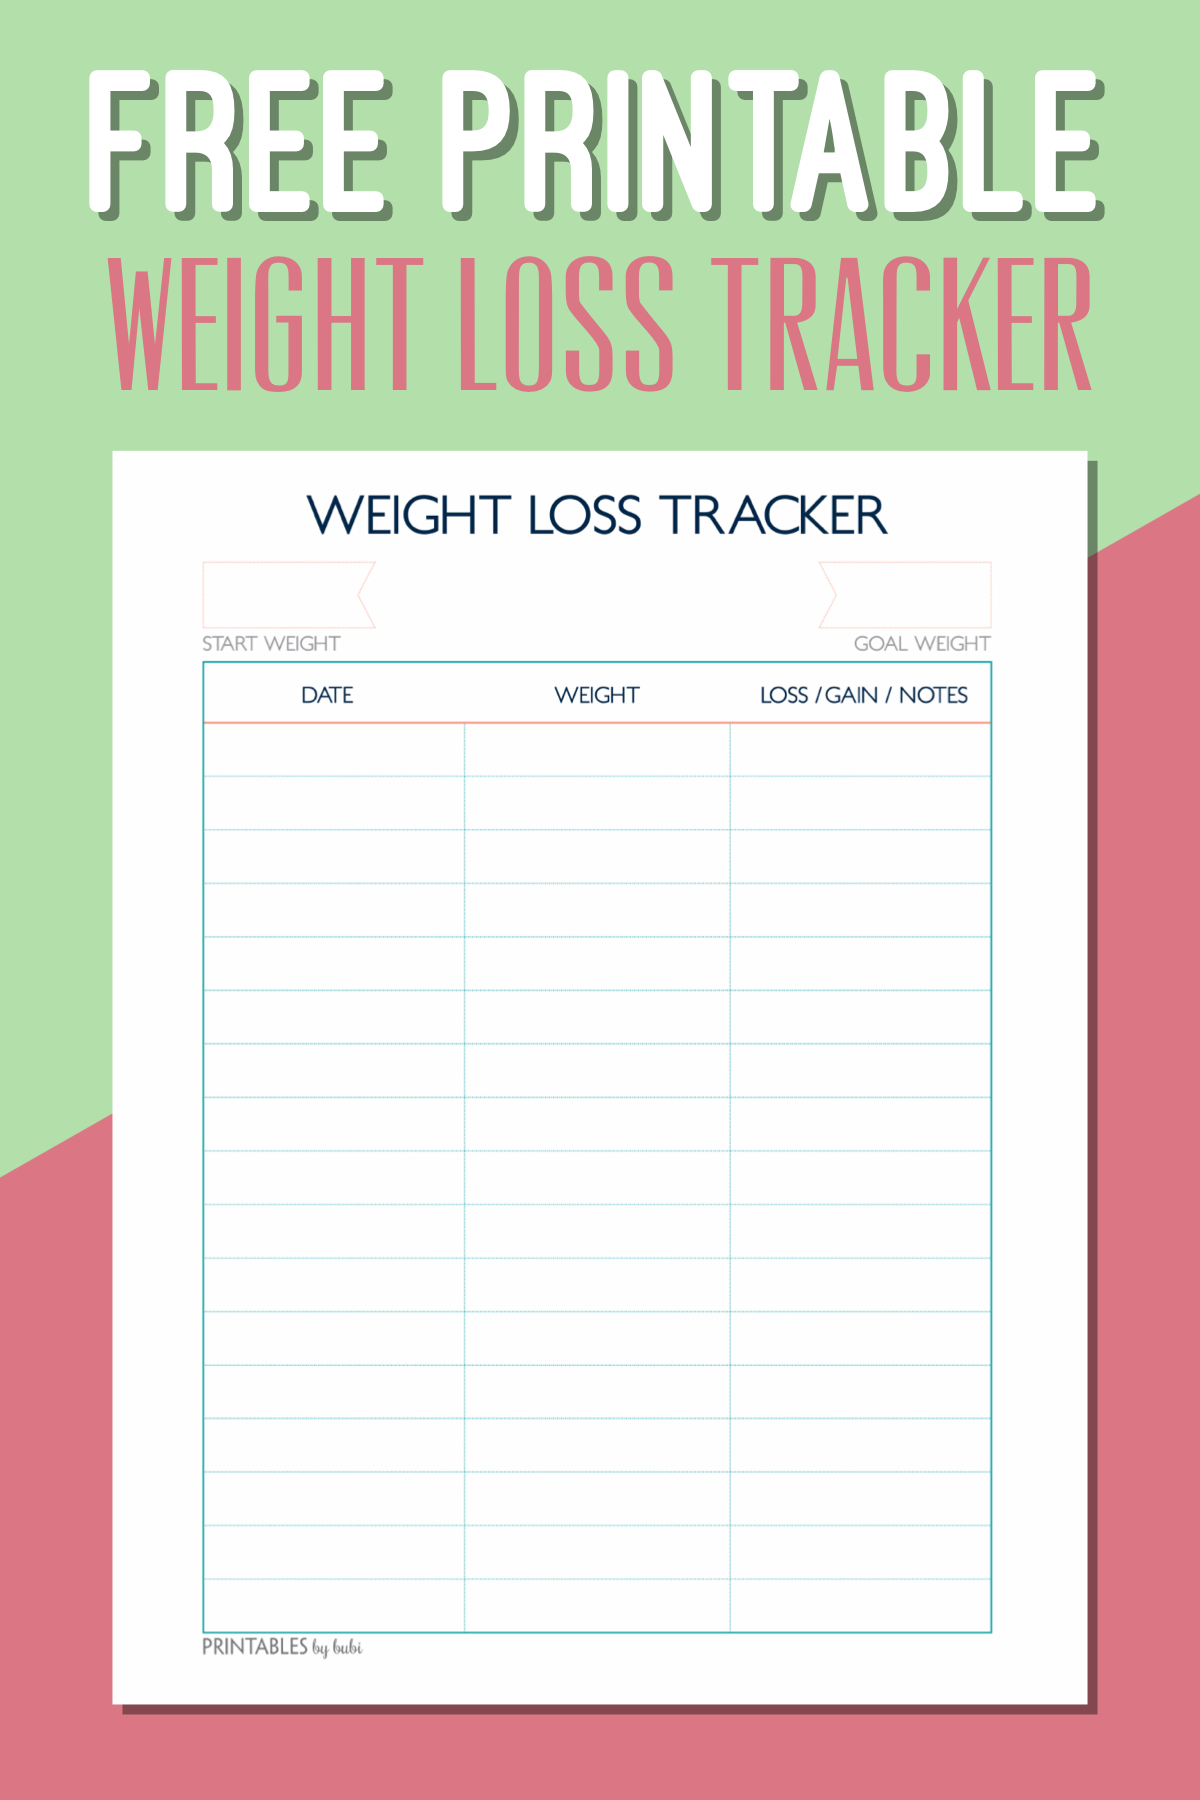 Free Printable Weight Loss Tracker – Instant Download PDF